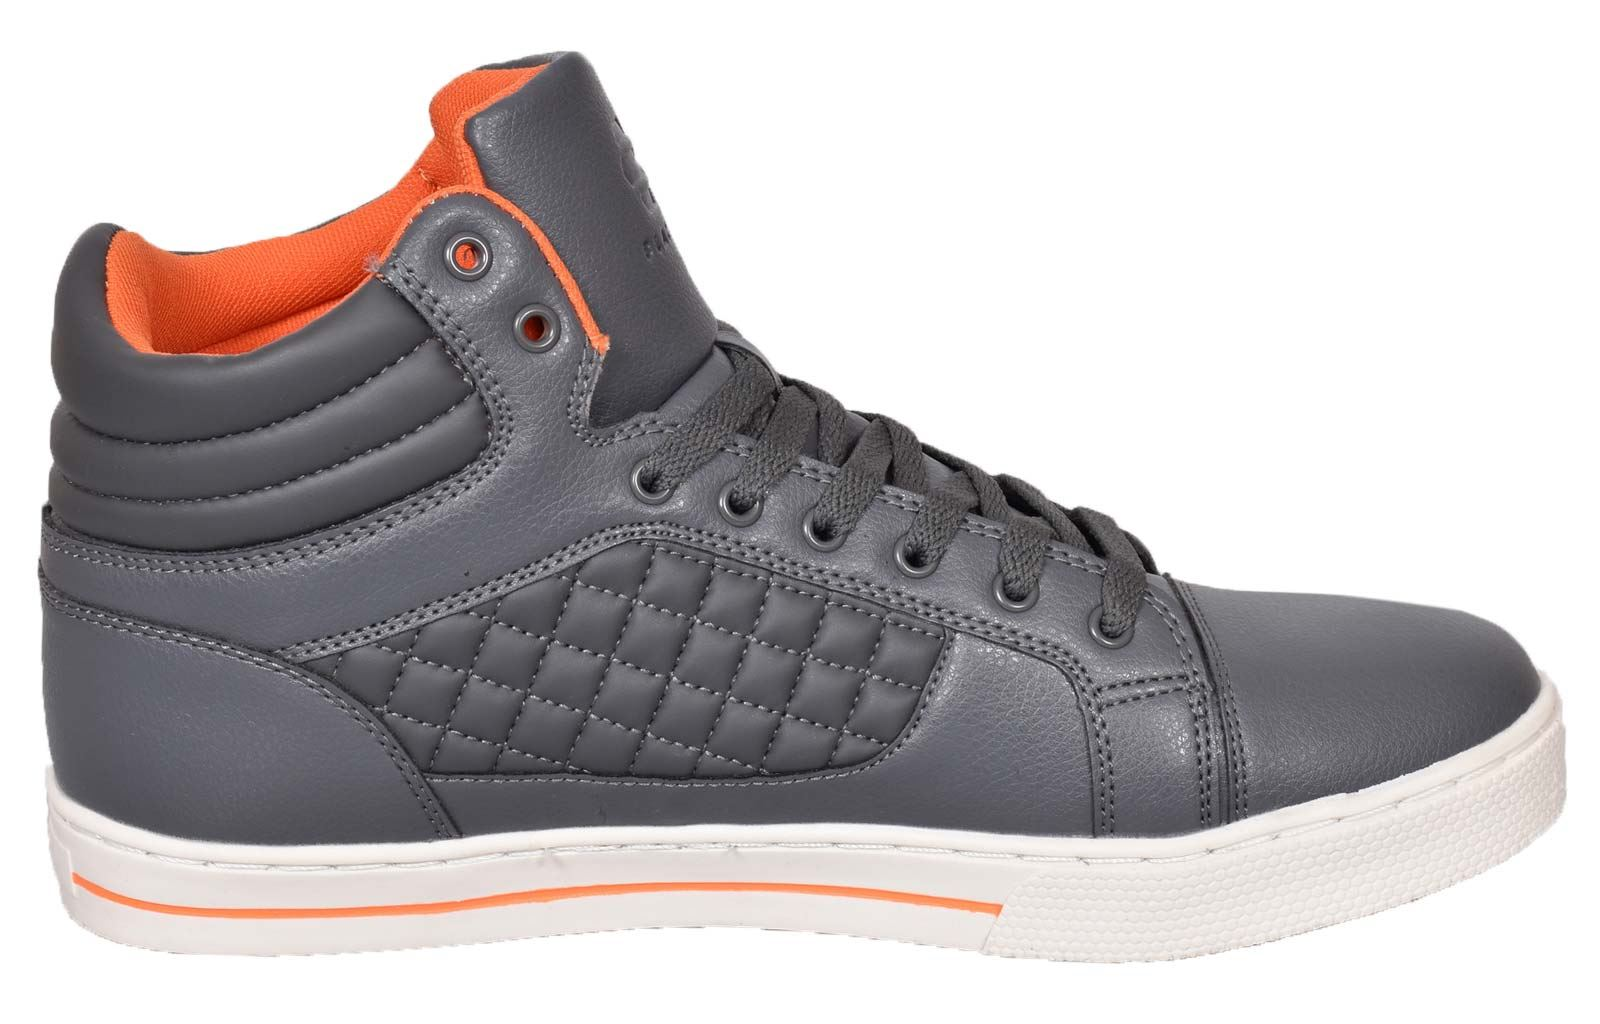 Mens-Trainers-Lace-up-Crosshatch-High-Tops-Ankle-Padded-Shoes-New-UK-Sizes-7-12 thumbnail 13